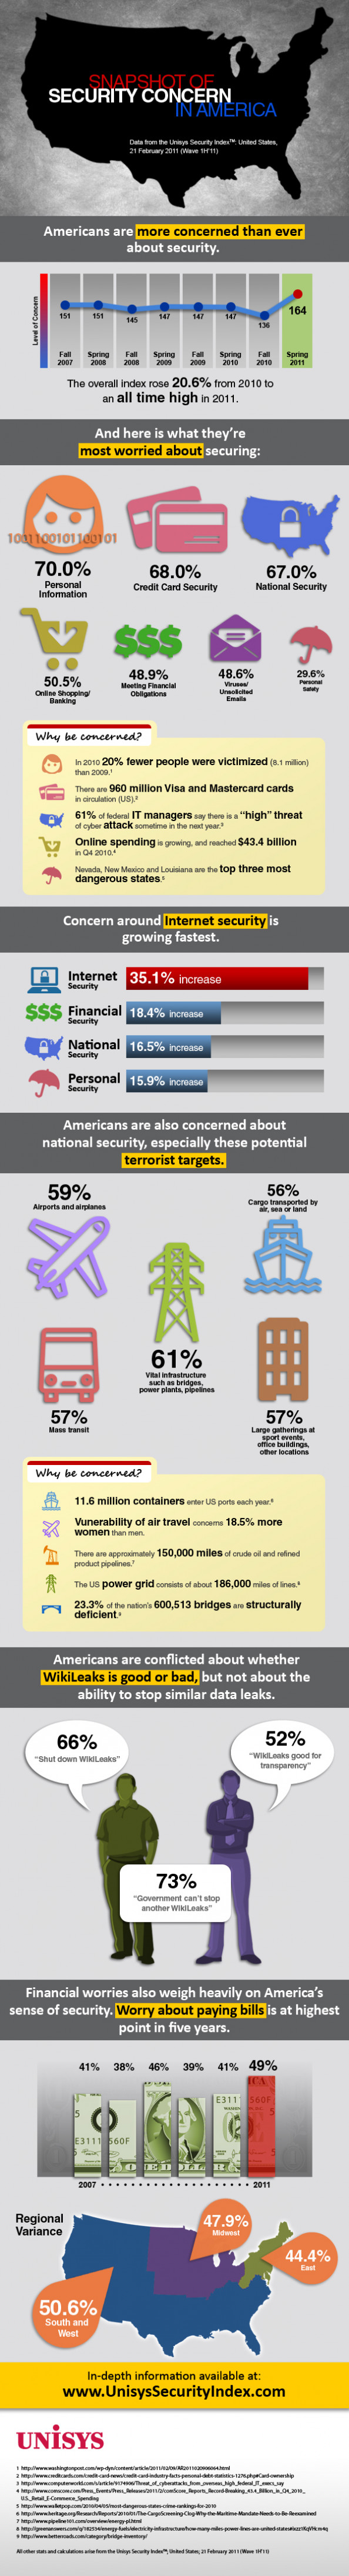 Snapshot of Security Concern in America Infographic